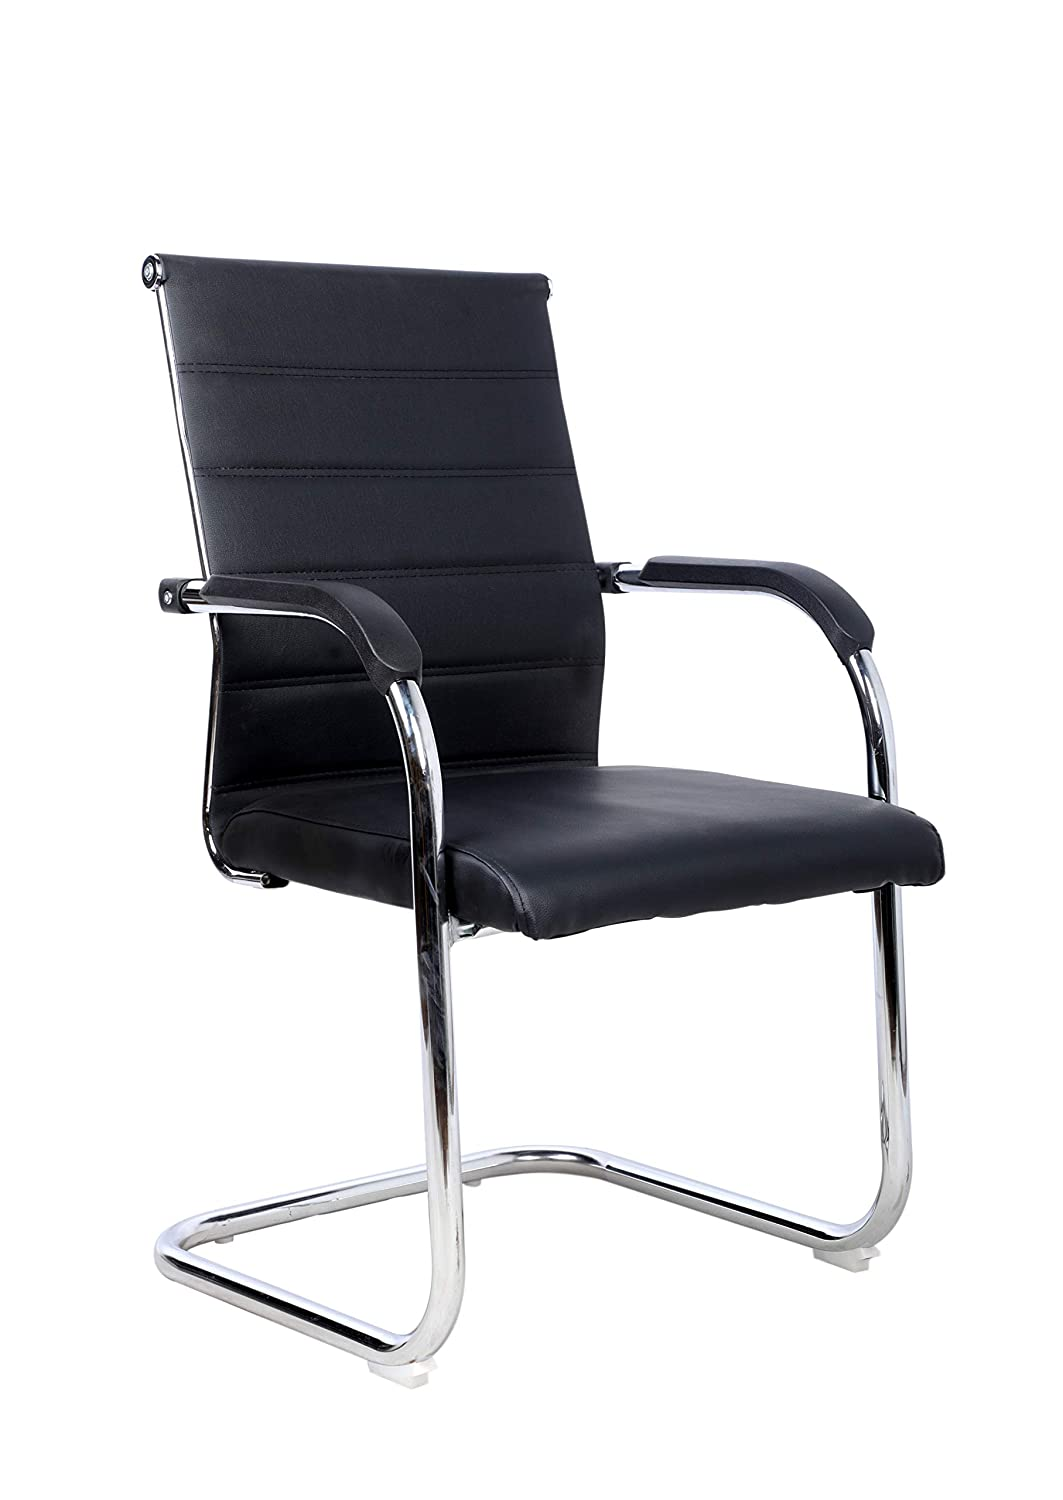 GTB BT-302 Octave Office Executive Visitor Chair in Black